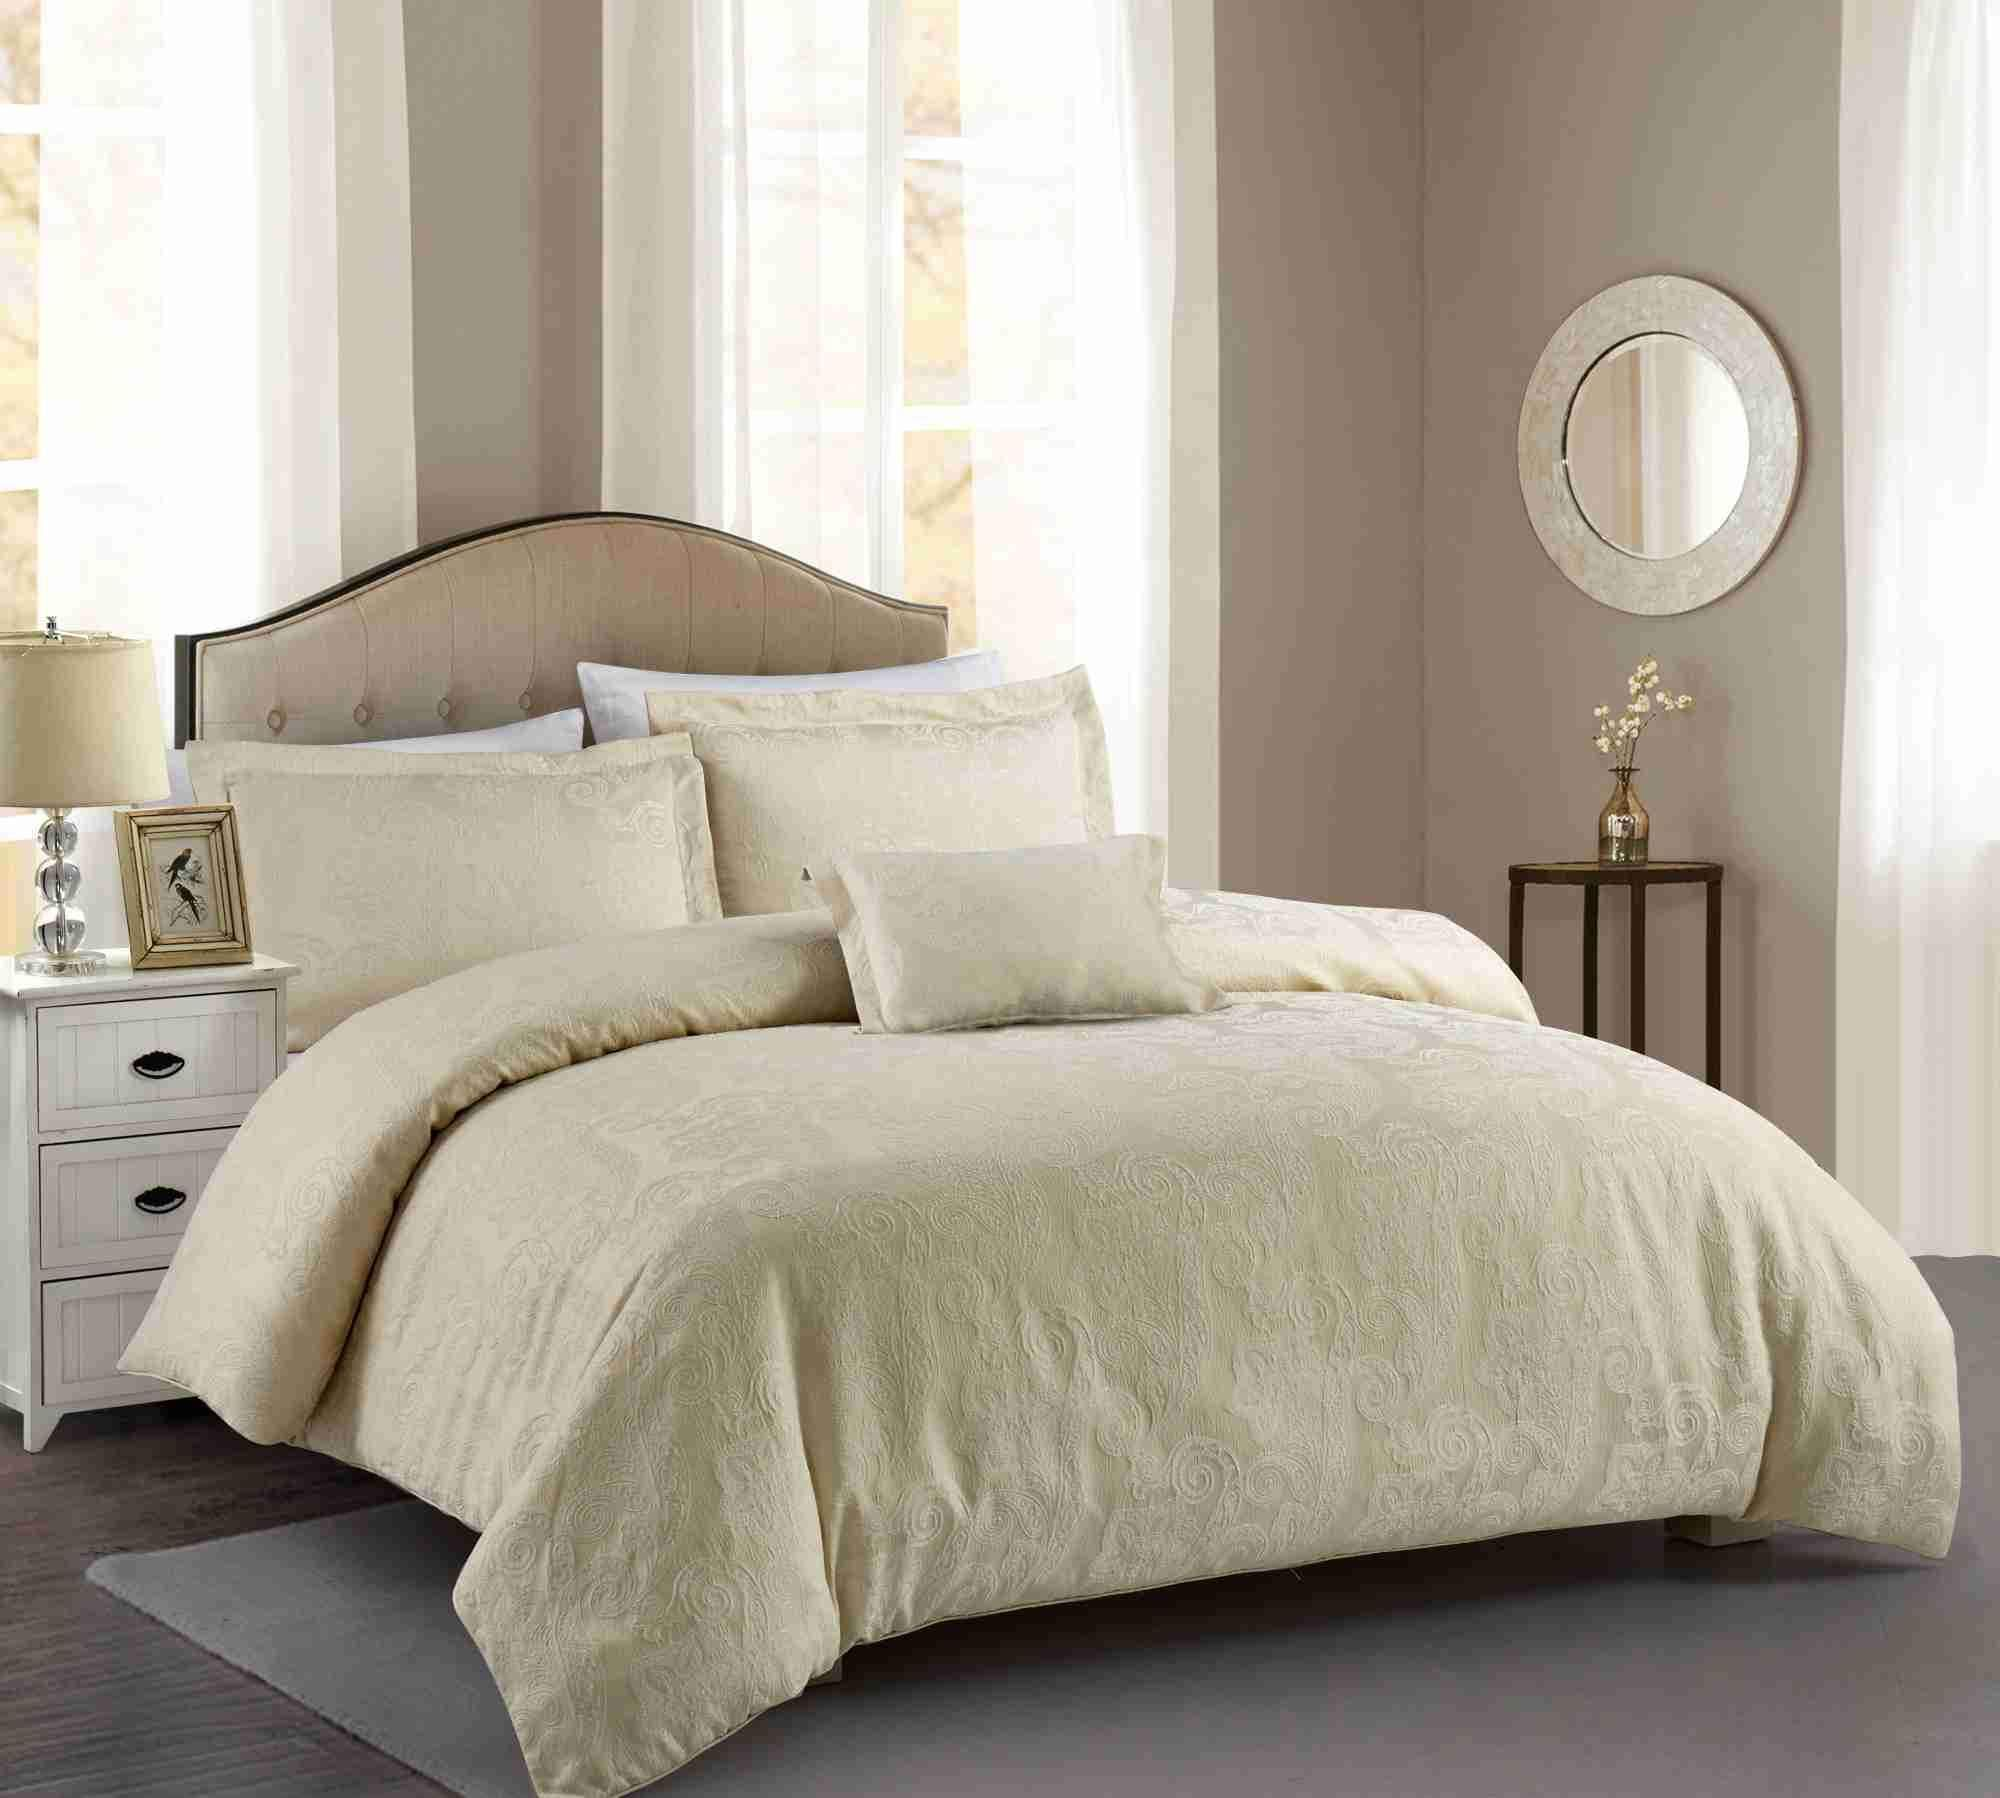 Hotel Paisley Luxe Woven Jacquard Comforter Set Comforter Sets Duvet Cover Sets Taupe Comforter